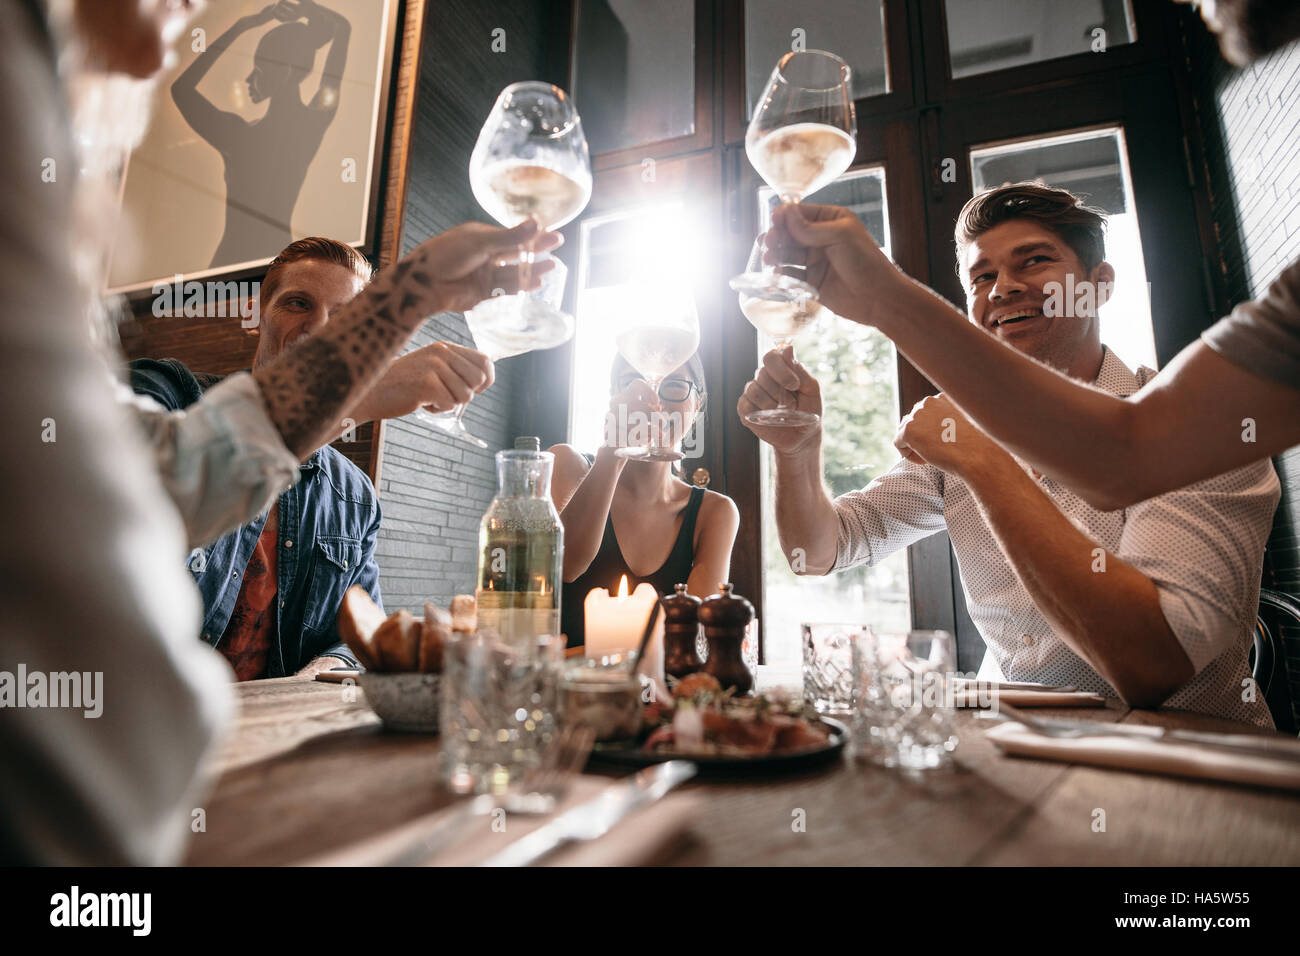 Group of young people making a toast at restaurant. Men and women sitting at a table in cafe and toasting wine. - Stock Image